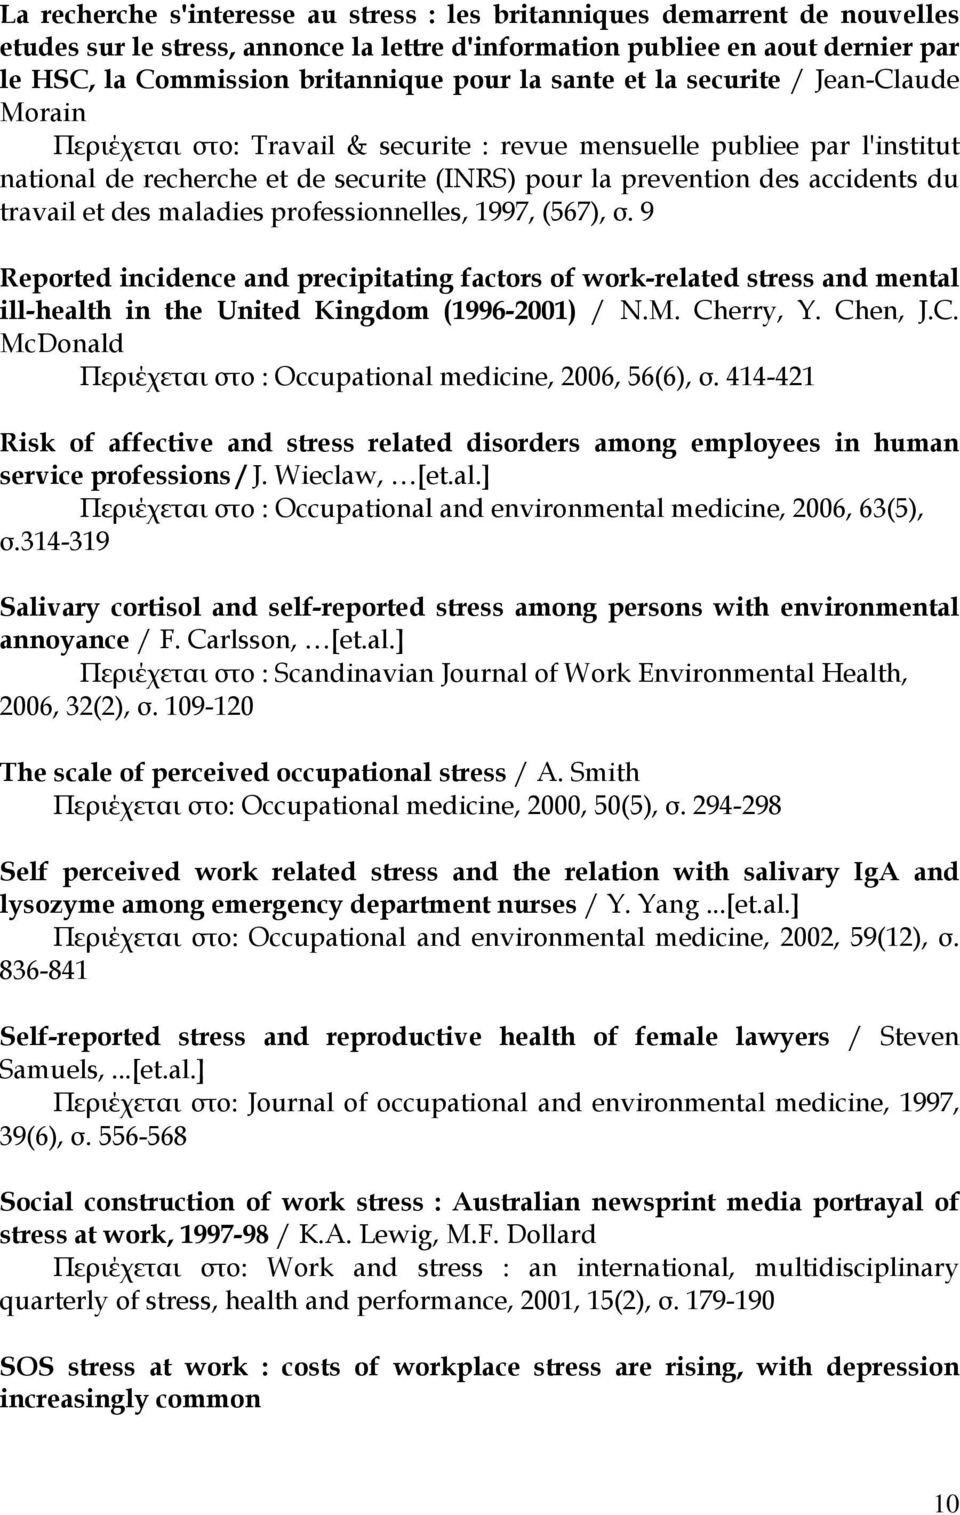 du travail et des maladies professionnelles, 1997, (567), σ. 9 Reported incidence and precipitating factors of work-related stress and mental ill-health in the United Kingdom (1996-2001) / N.M.